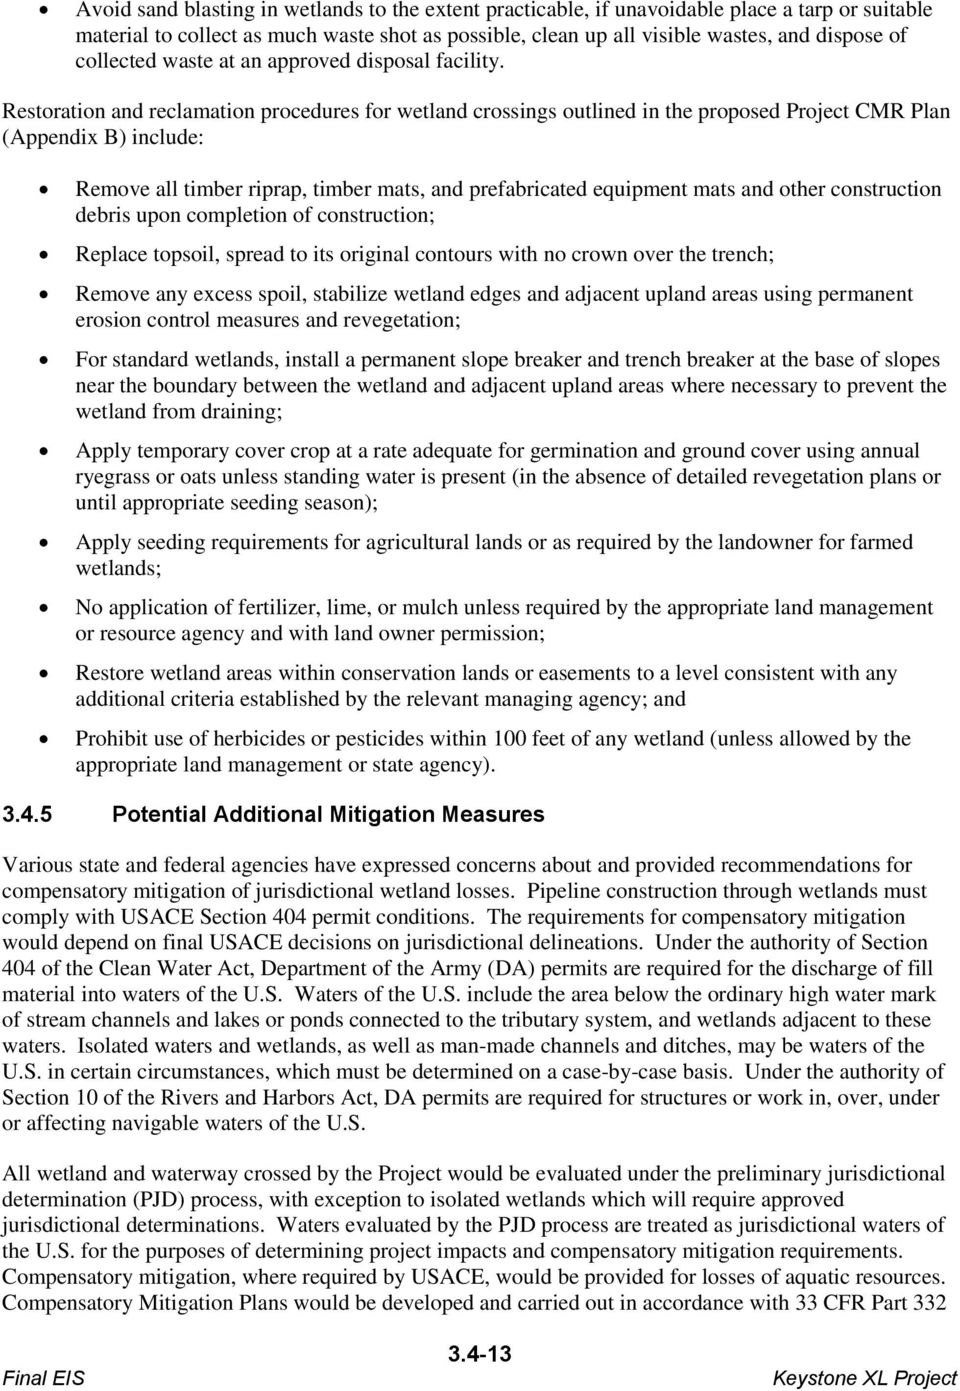 Restoration and reclamation procedures for wetland crossings outlined in the proposed Project CMR Plan (Appendix B) include: Remove all timber riprap, timber mats, and prefabricated equipment mats